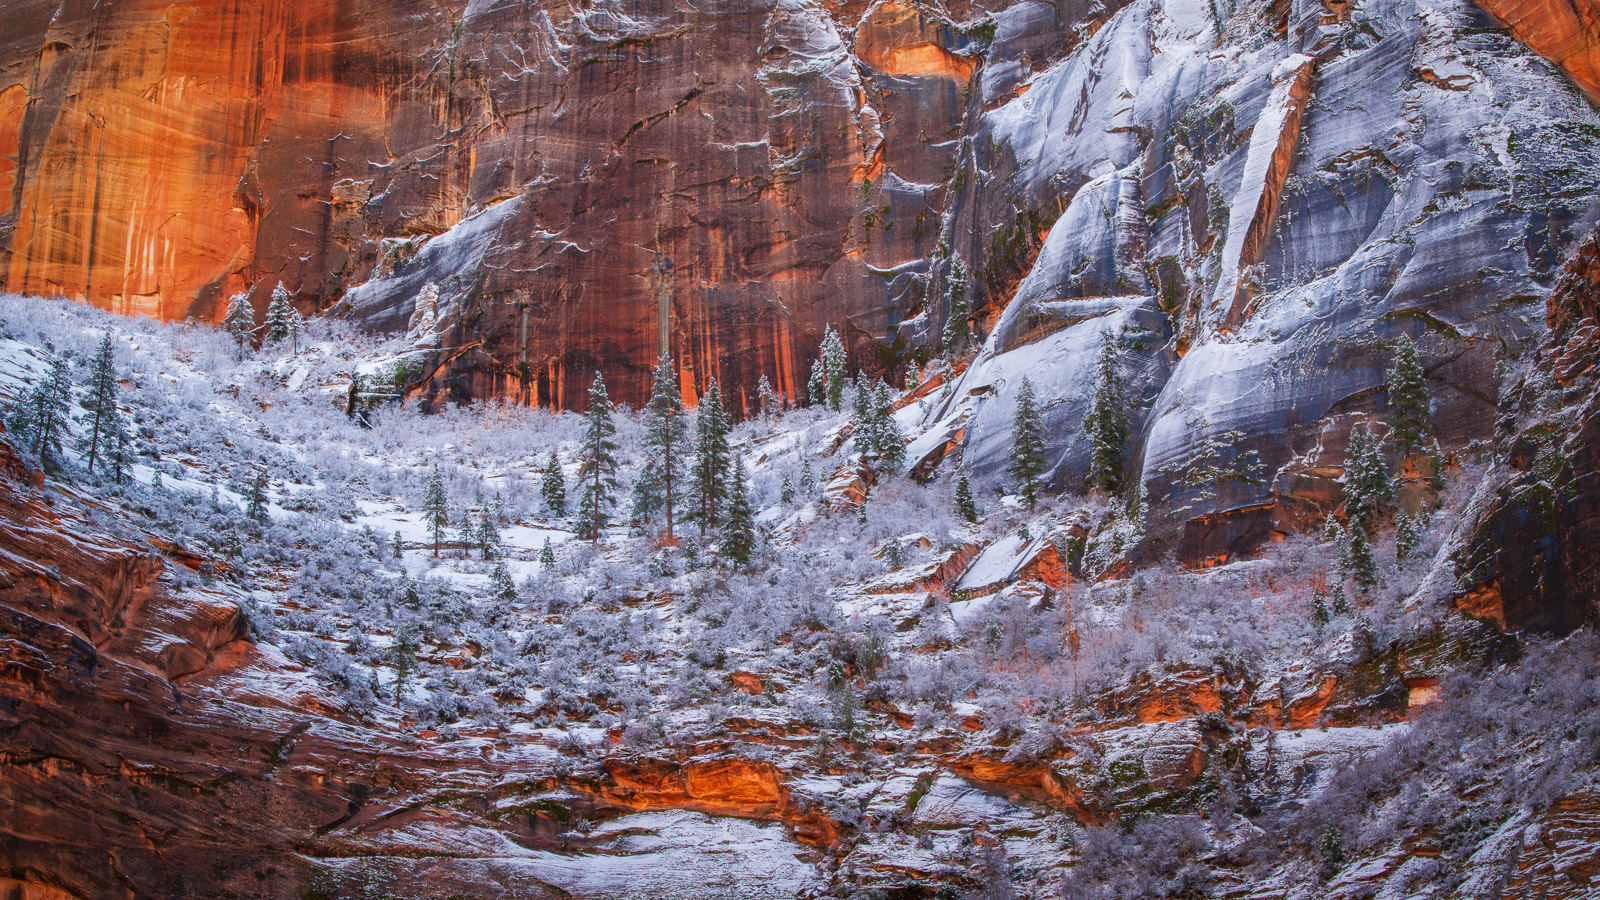 Snow and frost blanket Echo Canyon in Zion National Park. Available Print Sizes: 8x16, 12x24,15x30,20x40,30x60Limited Edition...